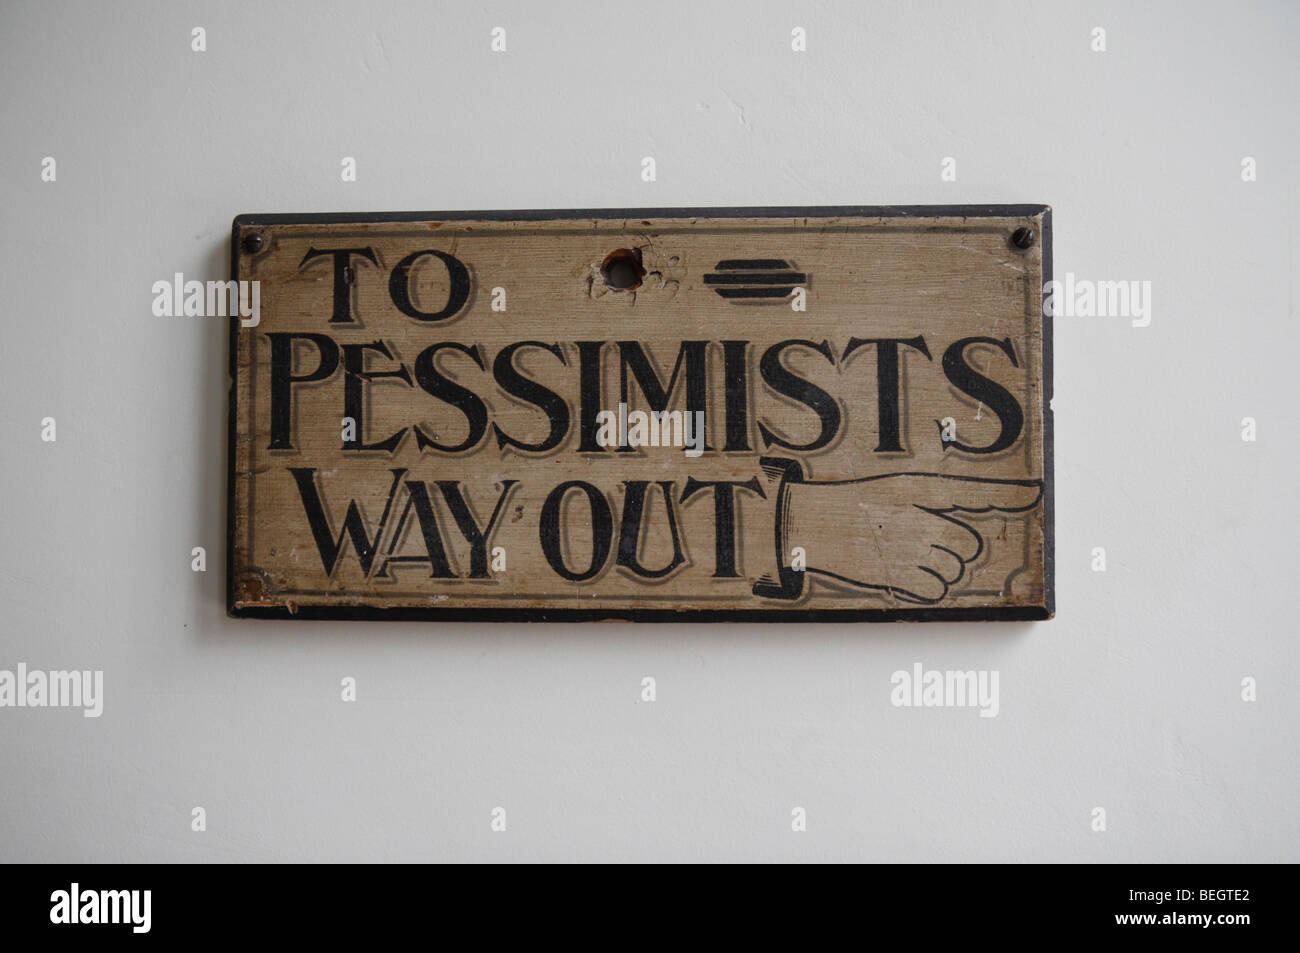 Amusing sign in the entrance hall of Talbot House, Poperinge, Belgium pointing all pessimists back out the door - Stock Image